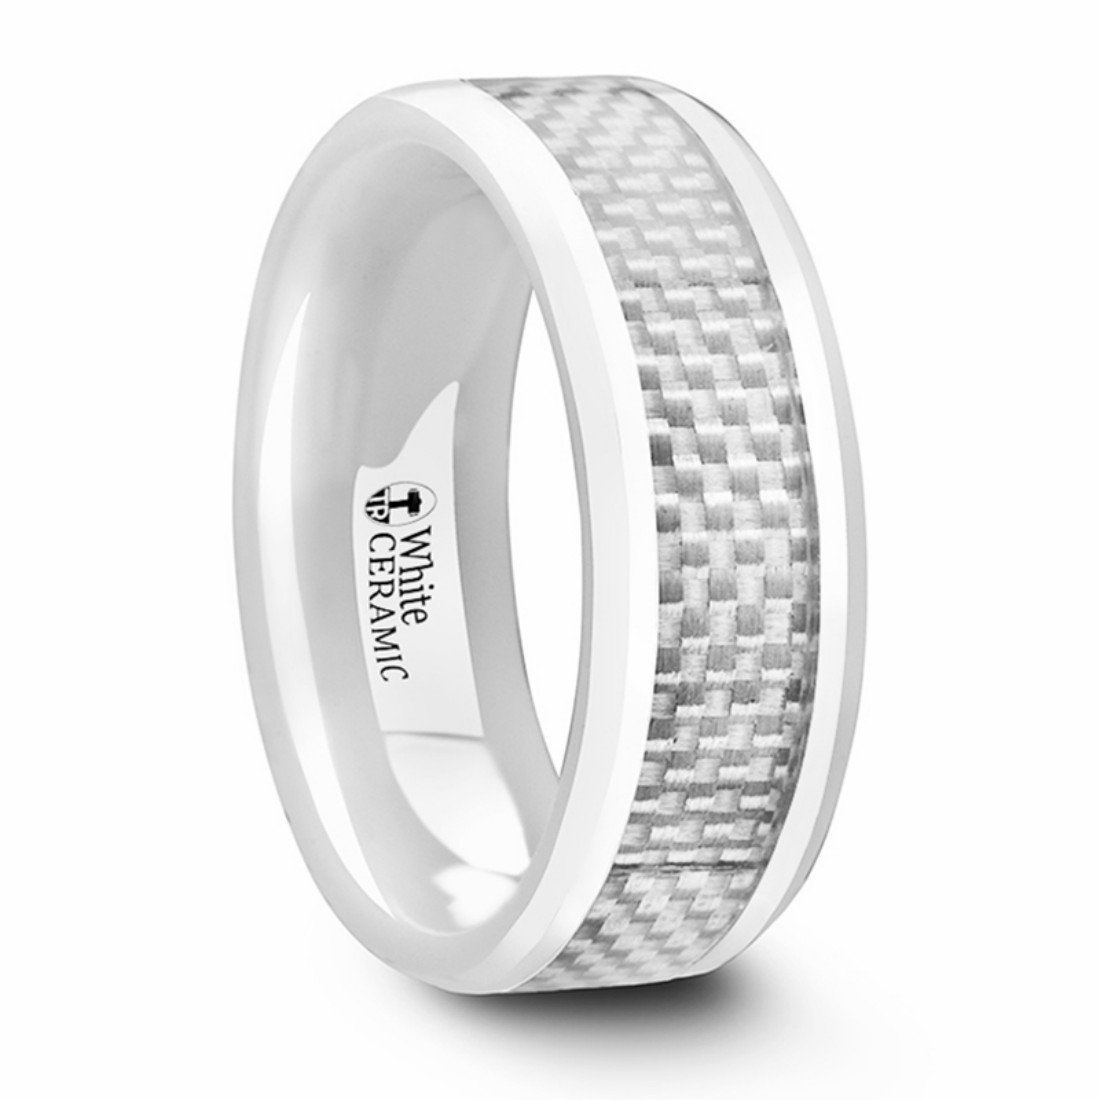 Thorsten Kenyon Beveled Polished White Ceramic Ring with White Carbon Fiber Inlay 8mm Wide Wedding Band from Roy Rose Jewelry